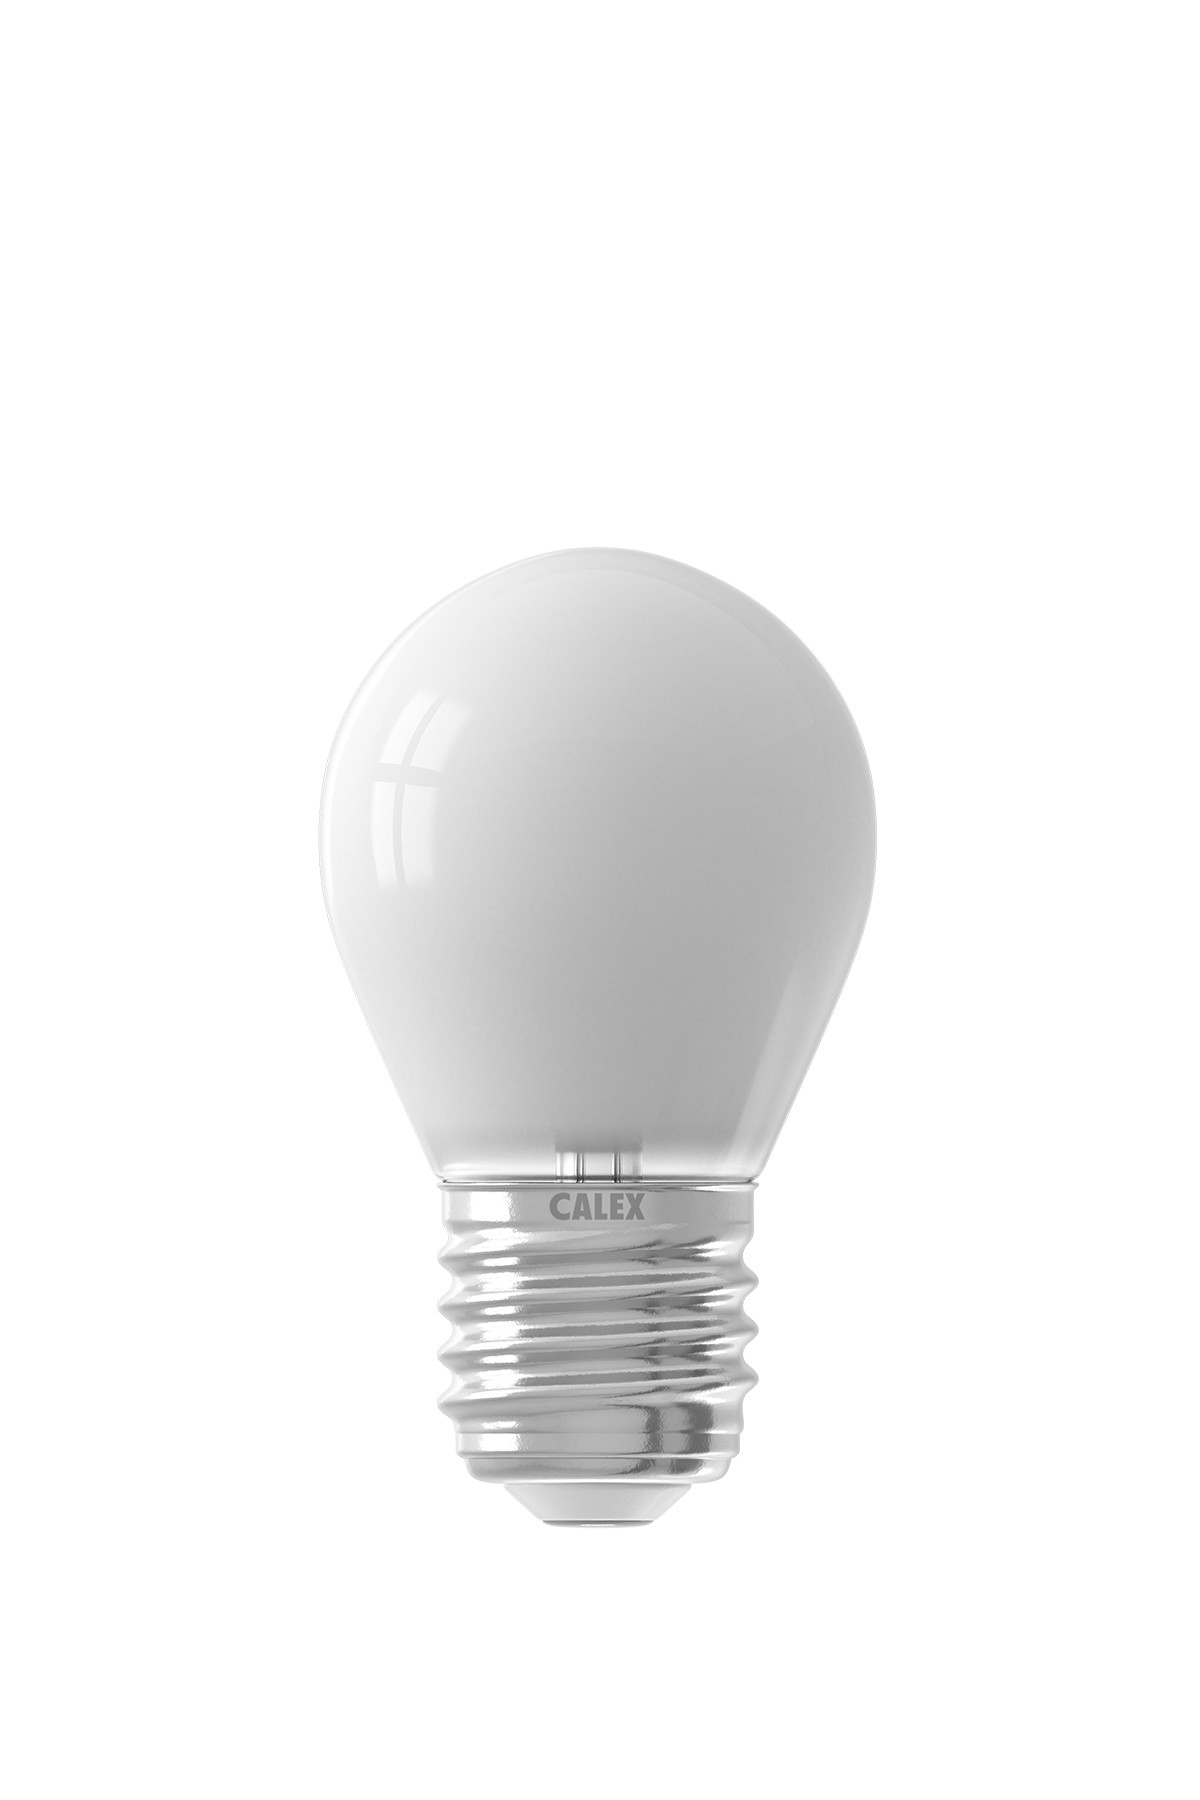 LED filament kogellamp dimbaar 240V 3,5W P45 Softline